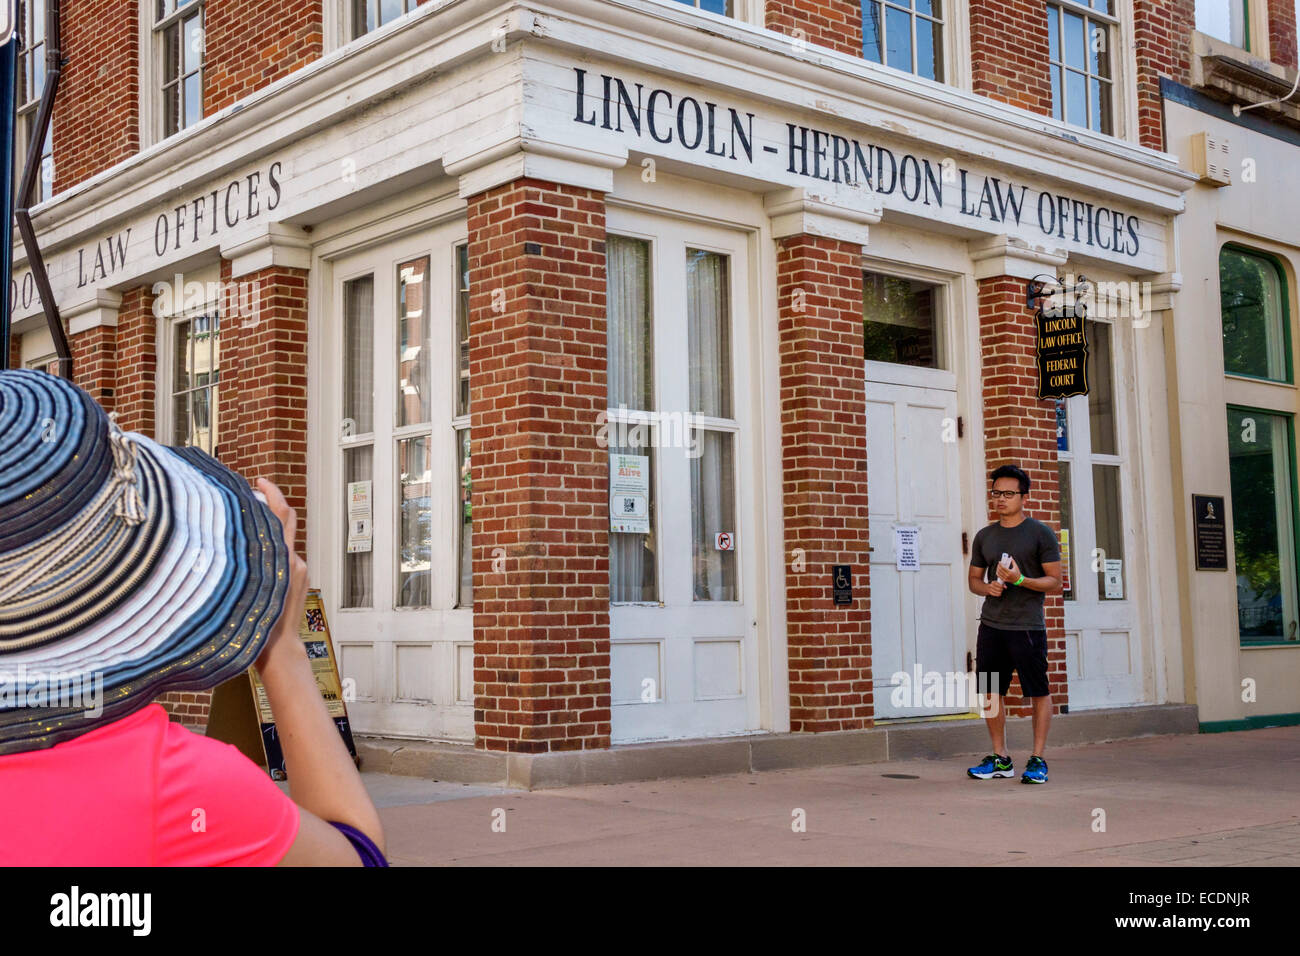 Springfield Illinois downtown historic buildings Old State Capitol Plaza Abraham Lincoln-Herndon Law Offices Asian - Stock Image